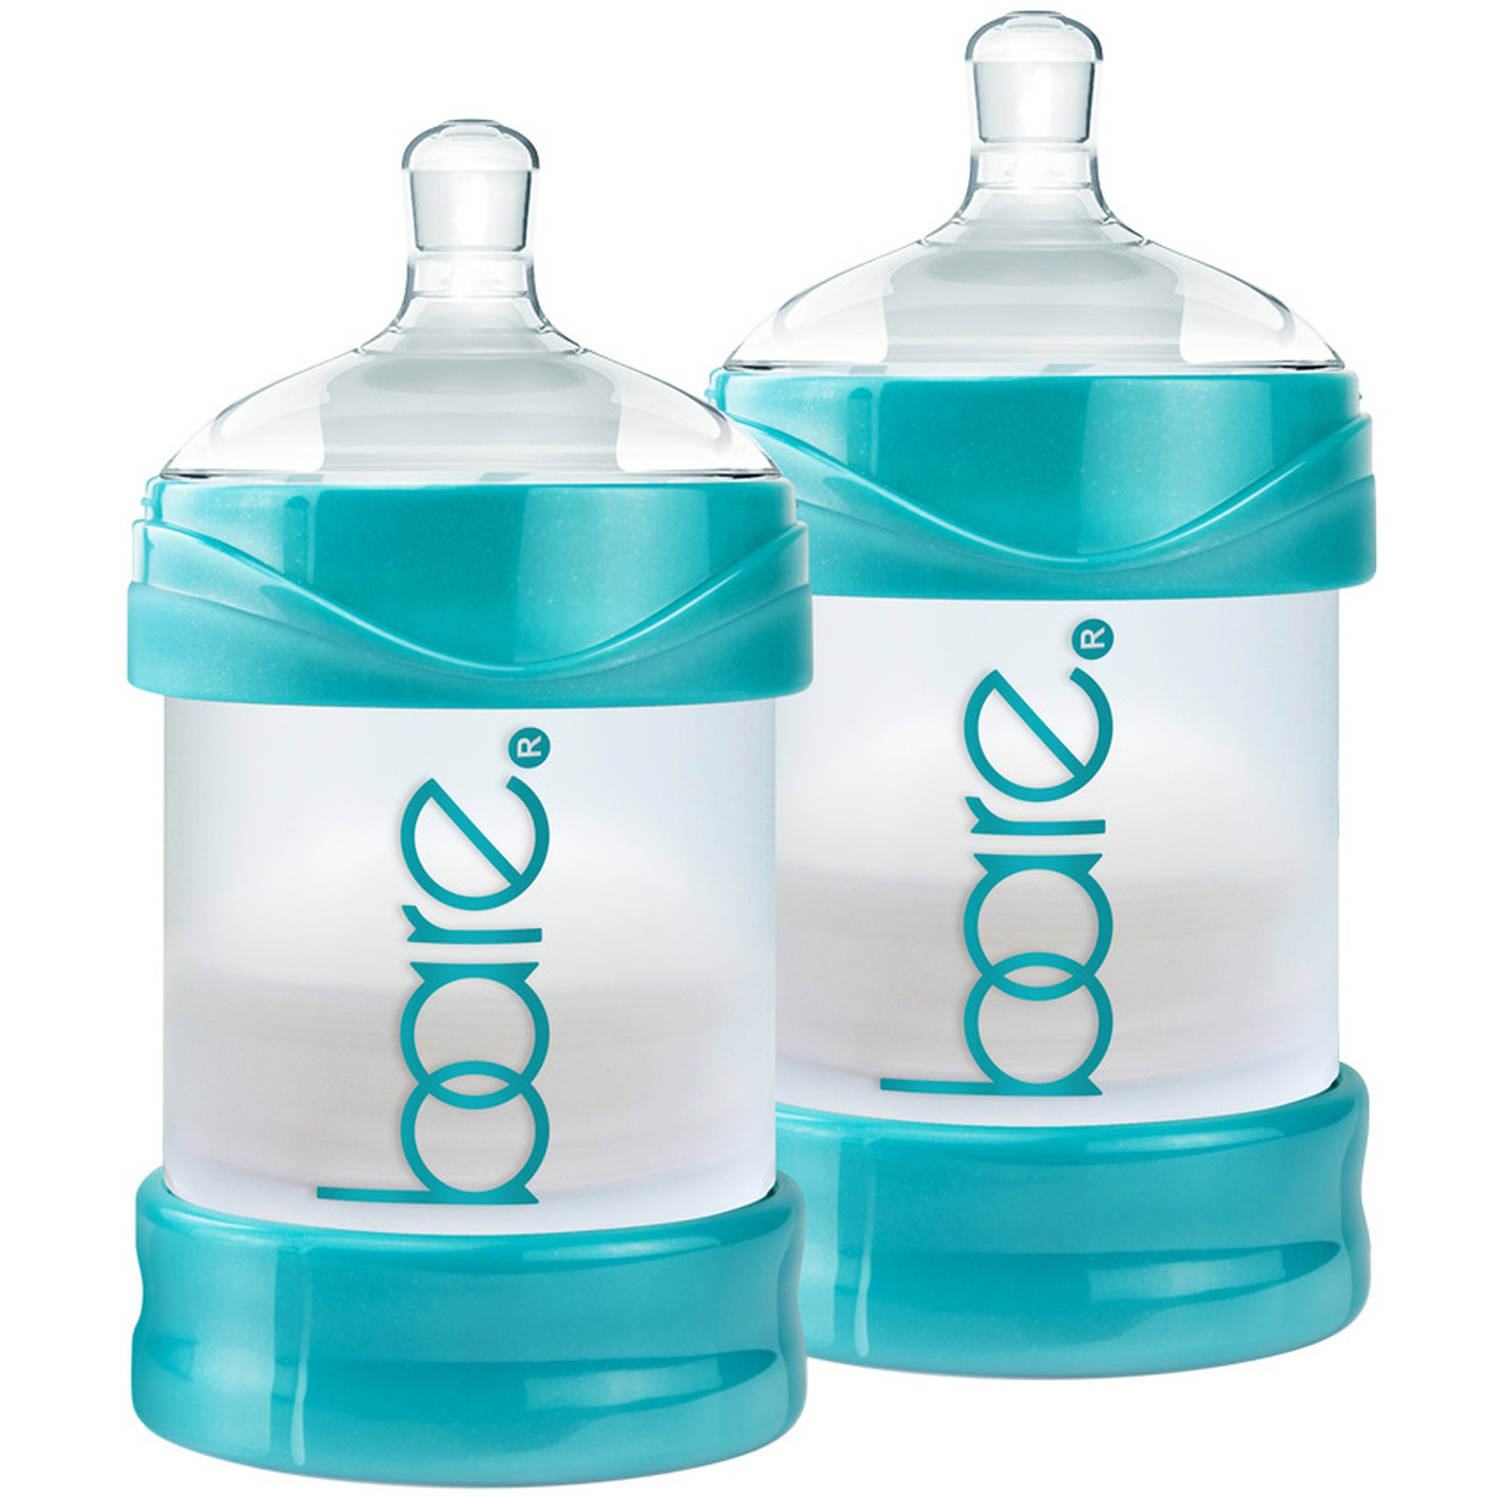 BARE Air-free 4oz Twin Pack with Easy-latch Nipples, Air-free, Anti Reflux, Anticolic by BARE AIR-FREE FEEDING SYSTEM